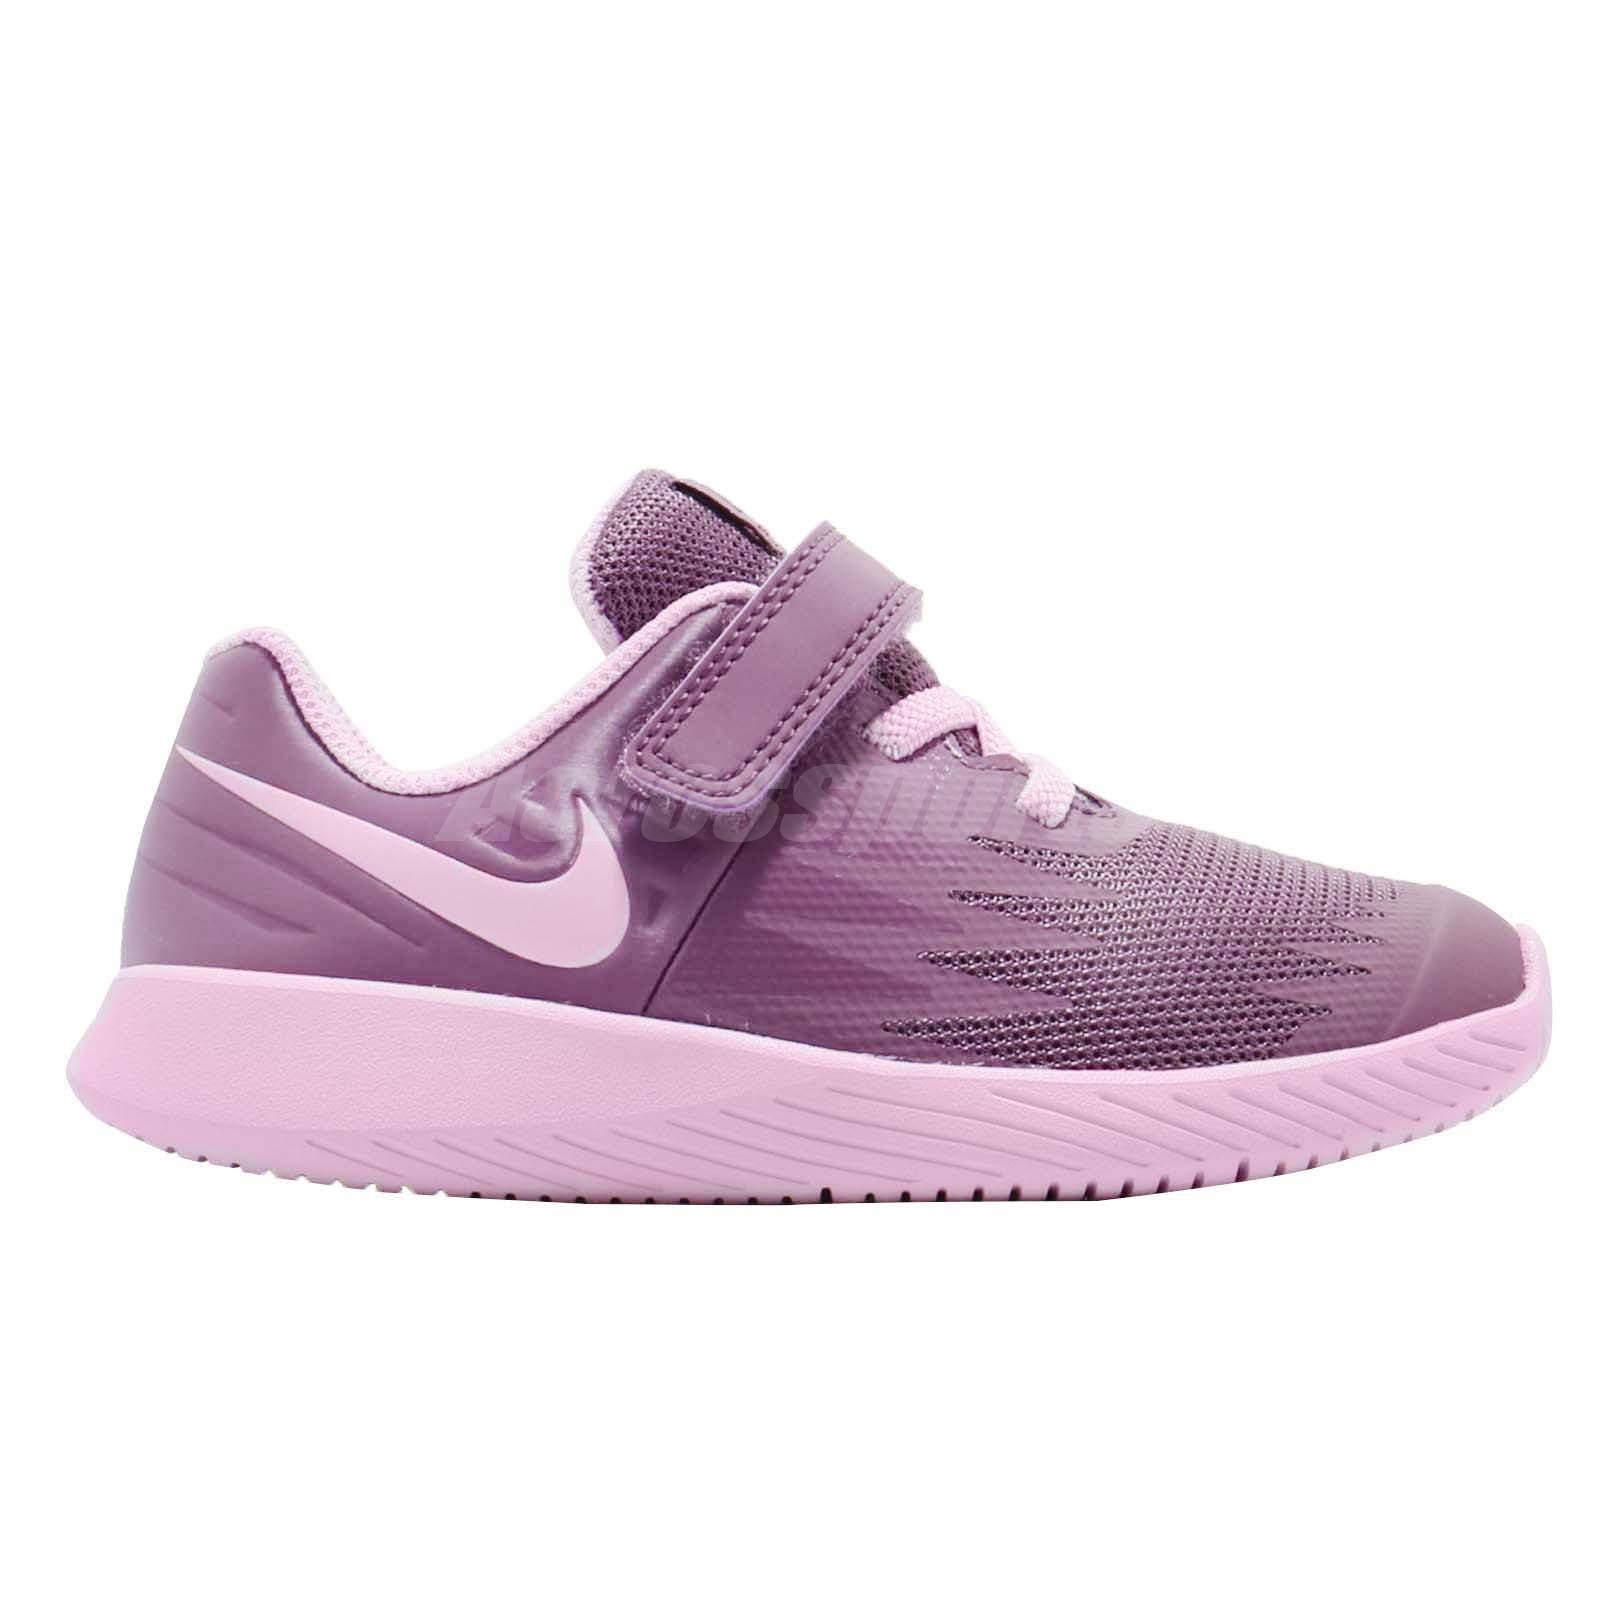 36a7af38f6 Nike Star Runner TDV Violet Dust Purple Pink Toddler Infant Baby ...